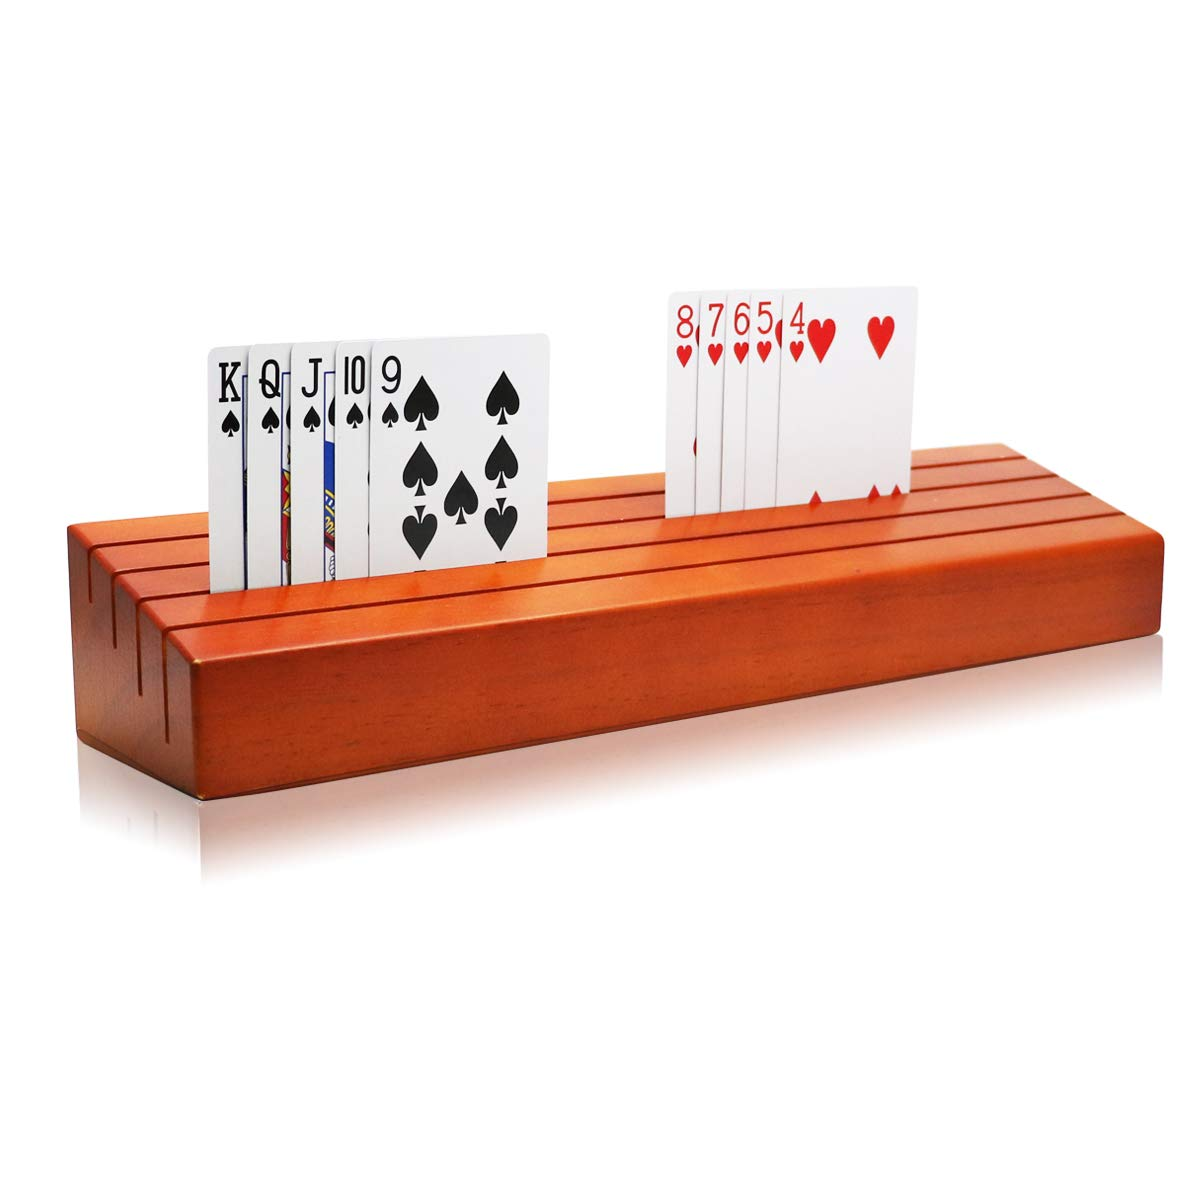 Exqline Wooden Playing Card Holder Tray Rack Organizer for Kids Seniors Adults - 13.8 inch 3.1 Inch Extended Versions Long Enough for Bridge Canasta Strategy Card Playing